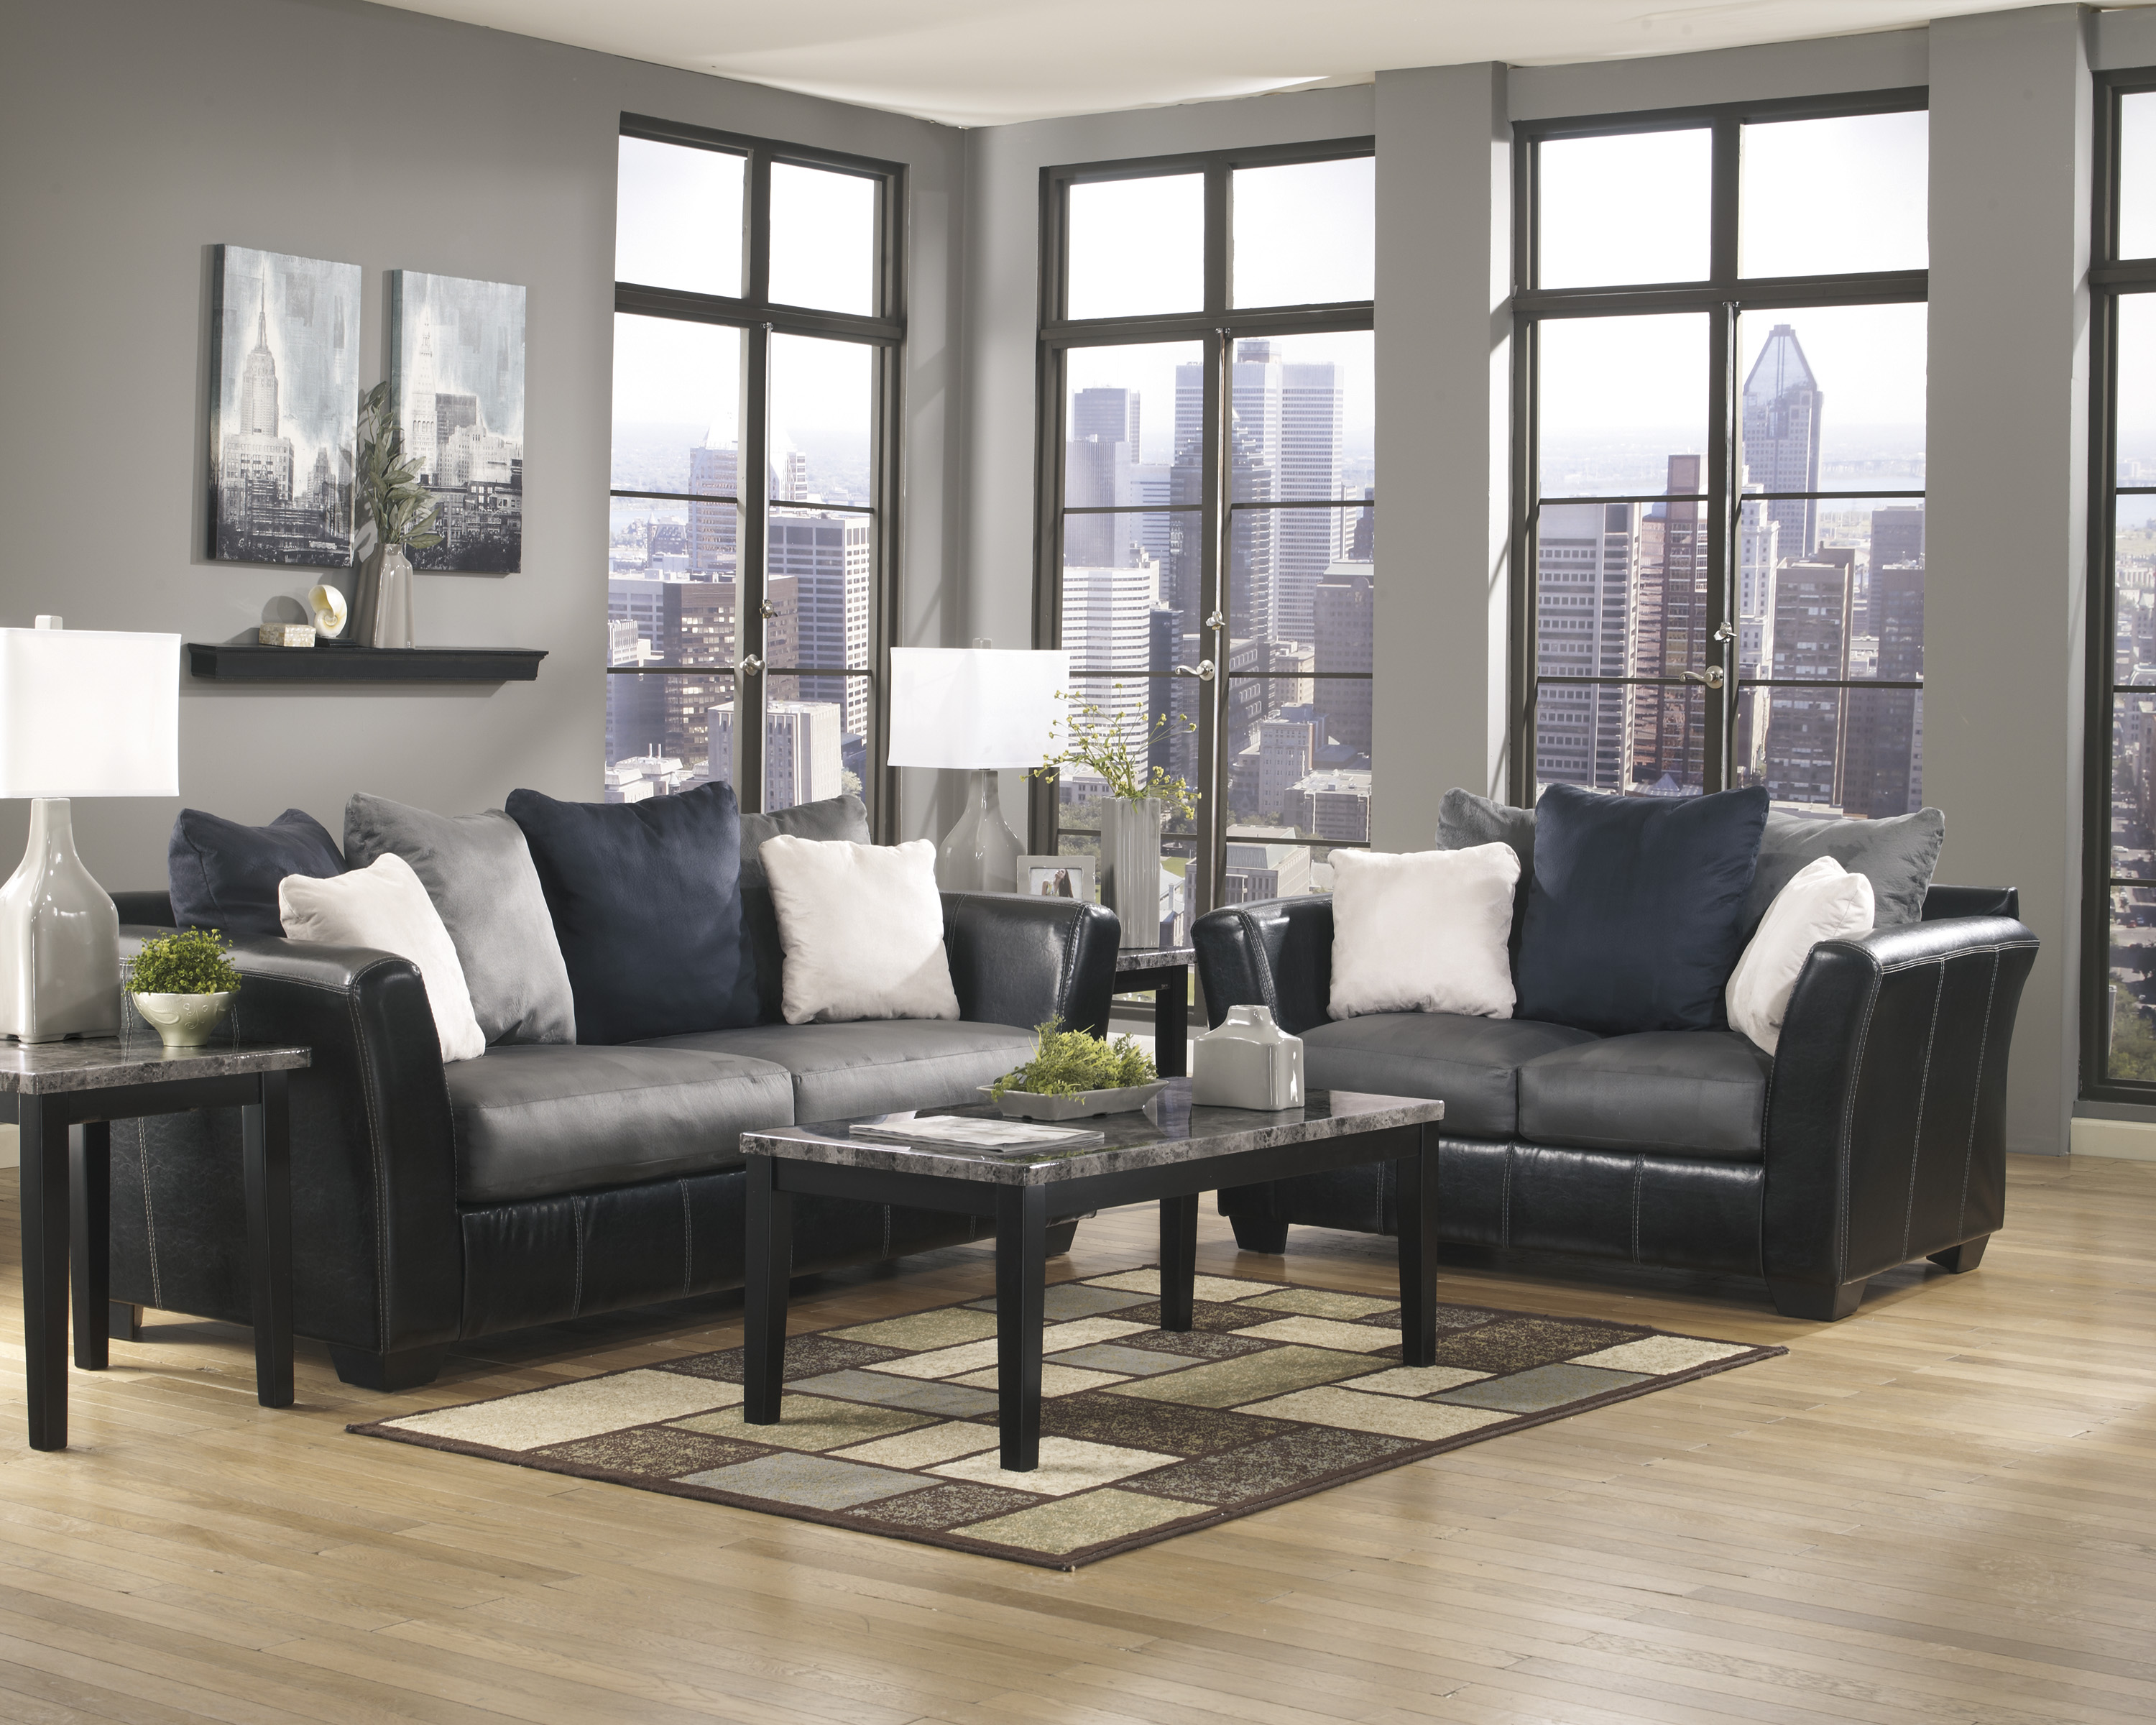 home living room living room set masoli cobblestone sofa loveseat set